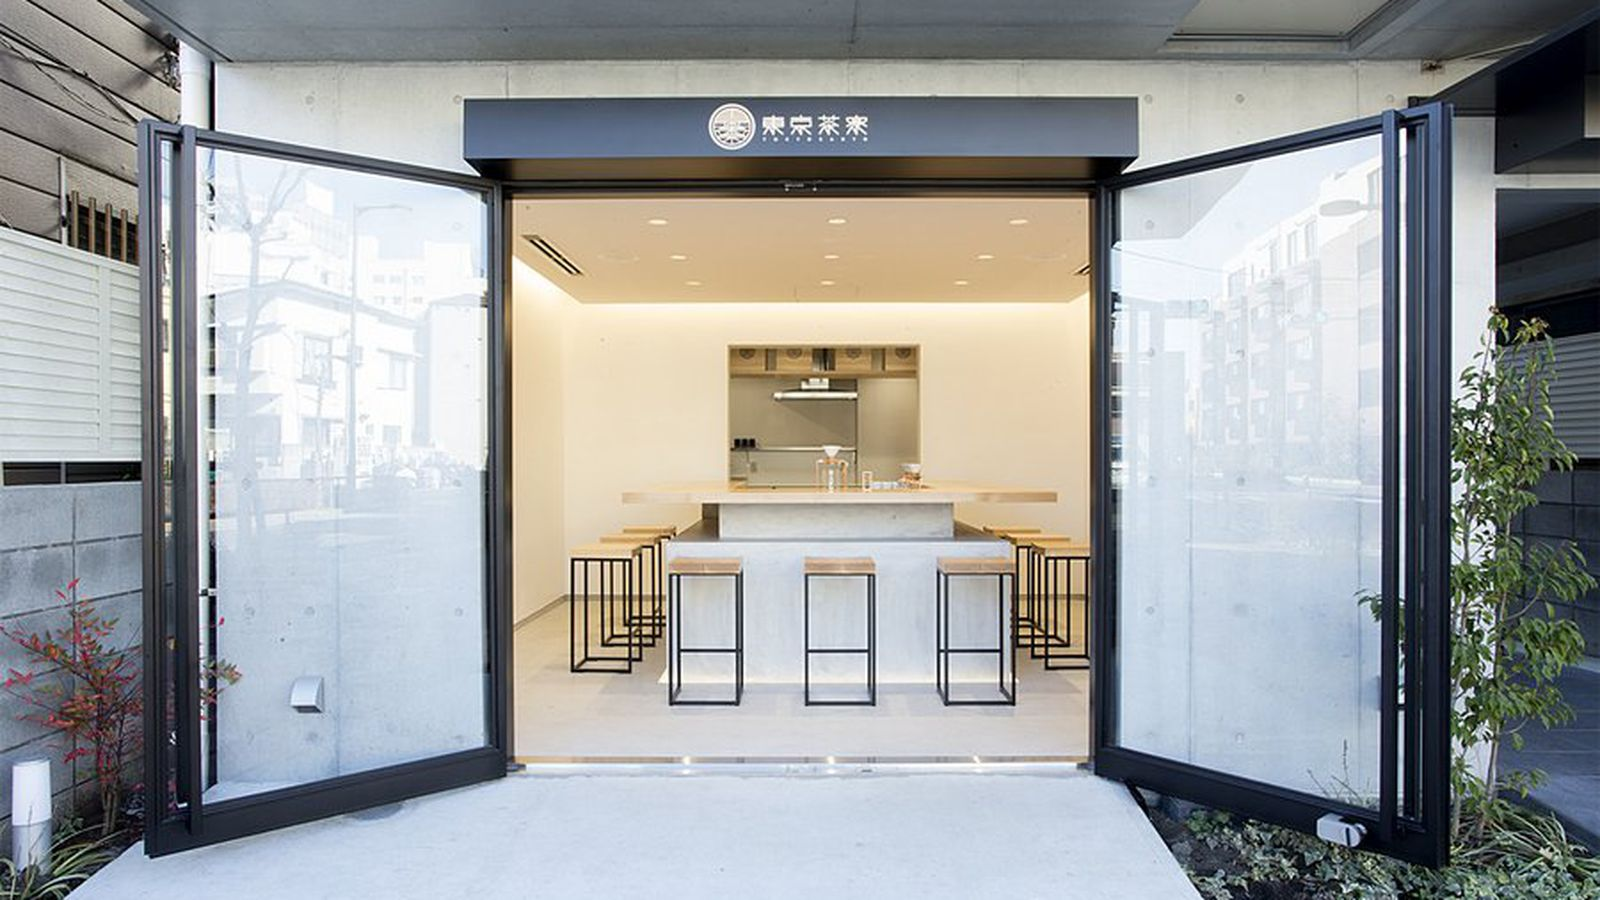 minimalist tokyo cafe serves 'world's first hand-dripped tea' - curbed